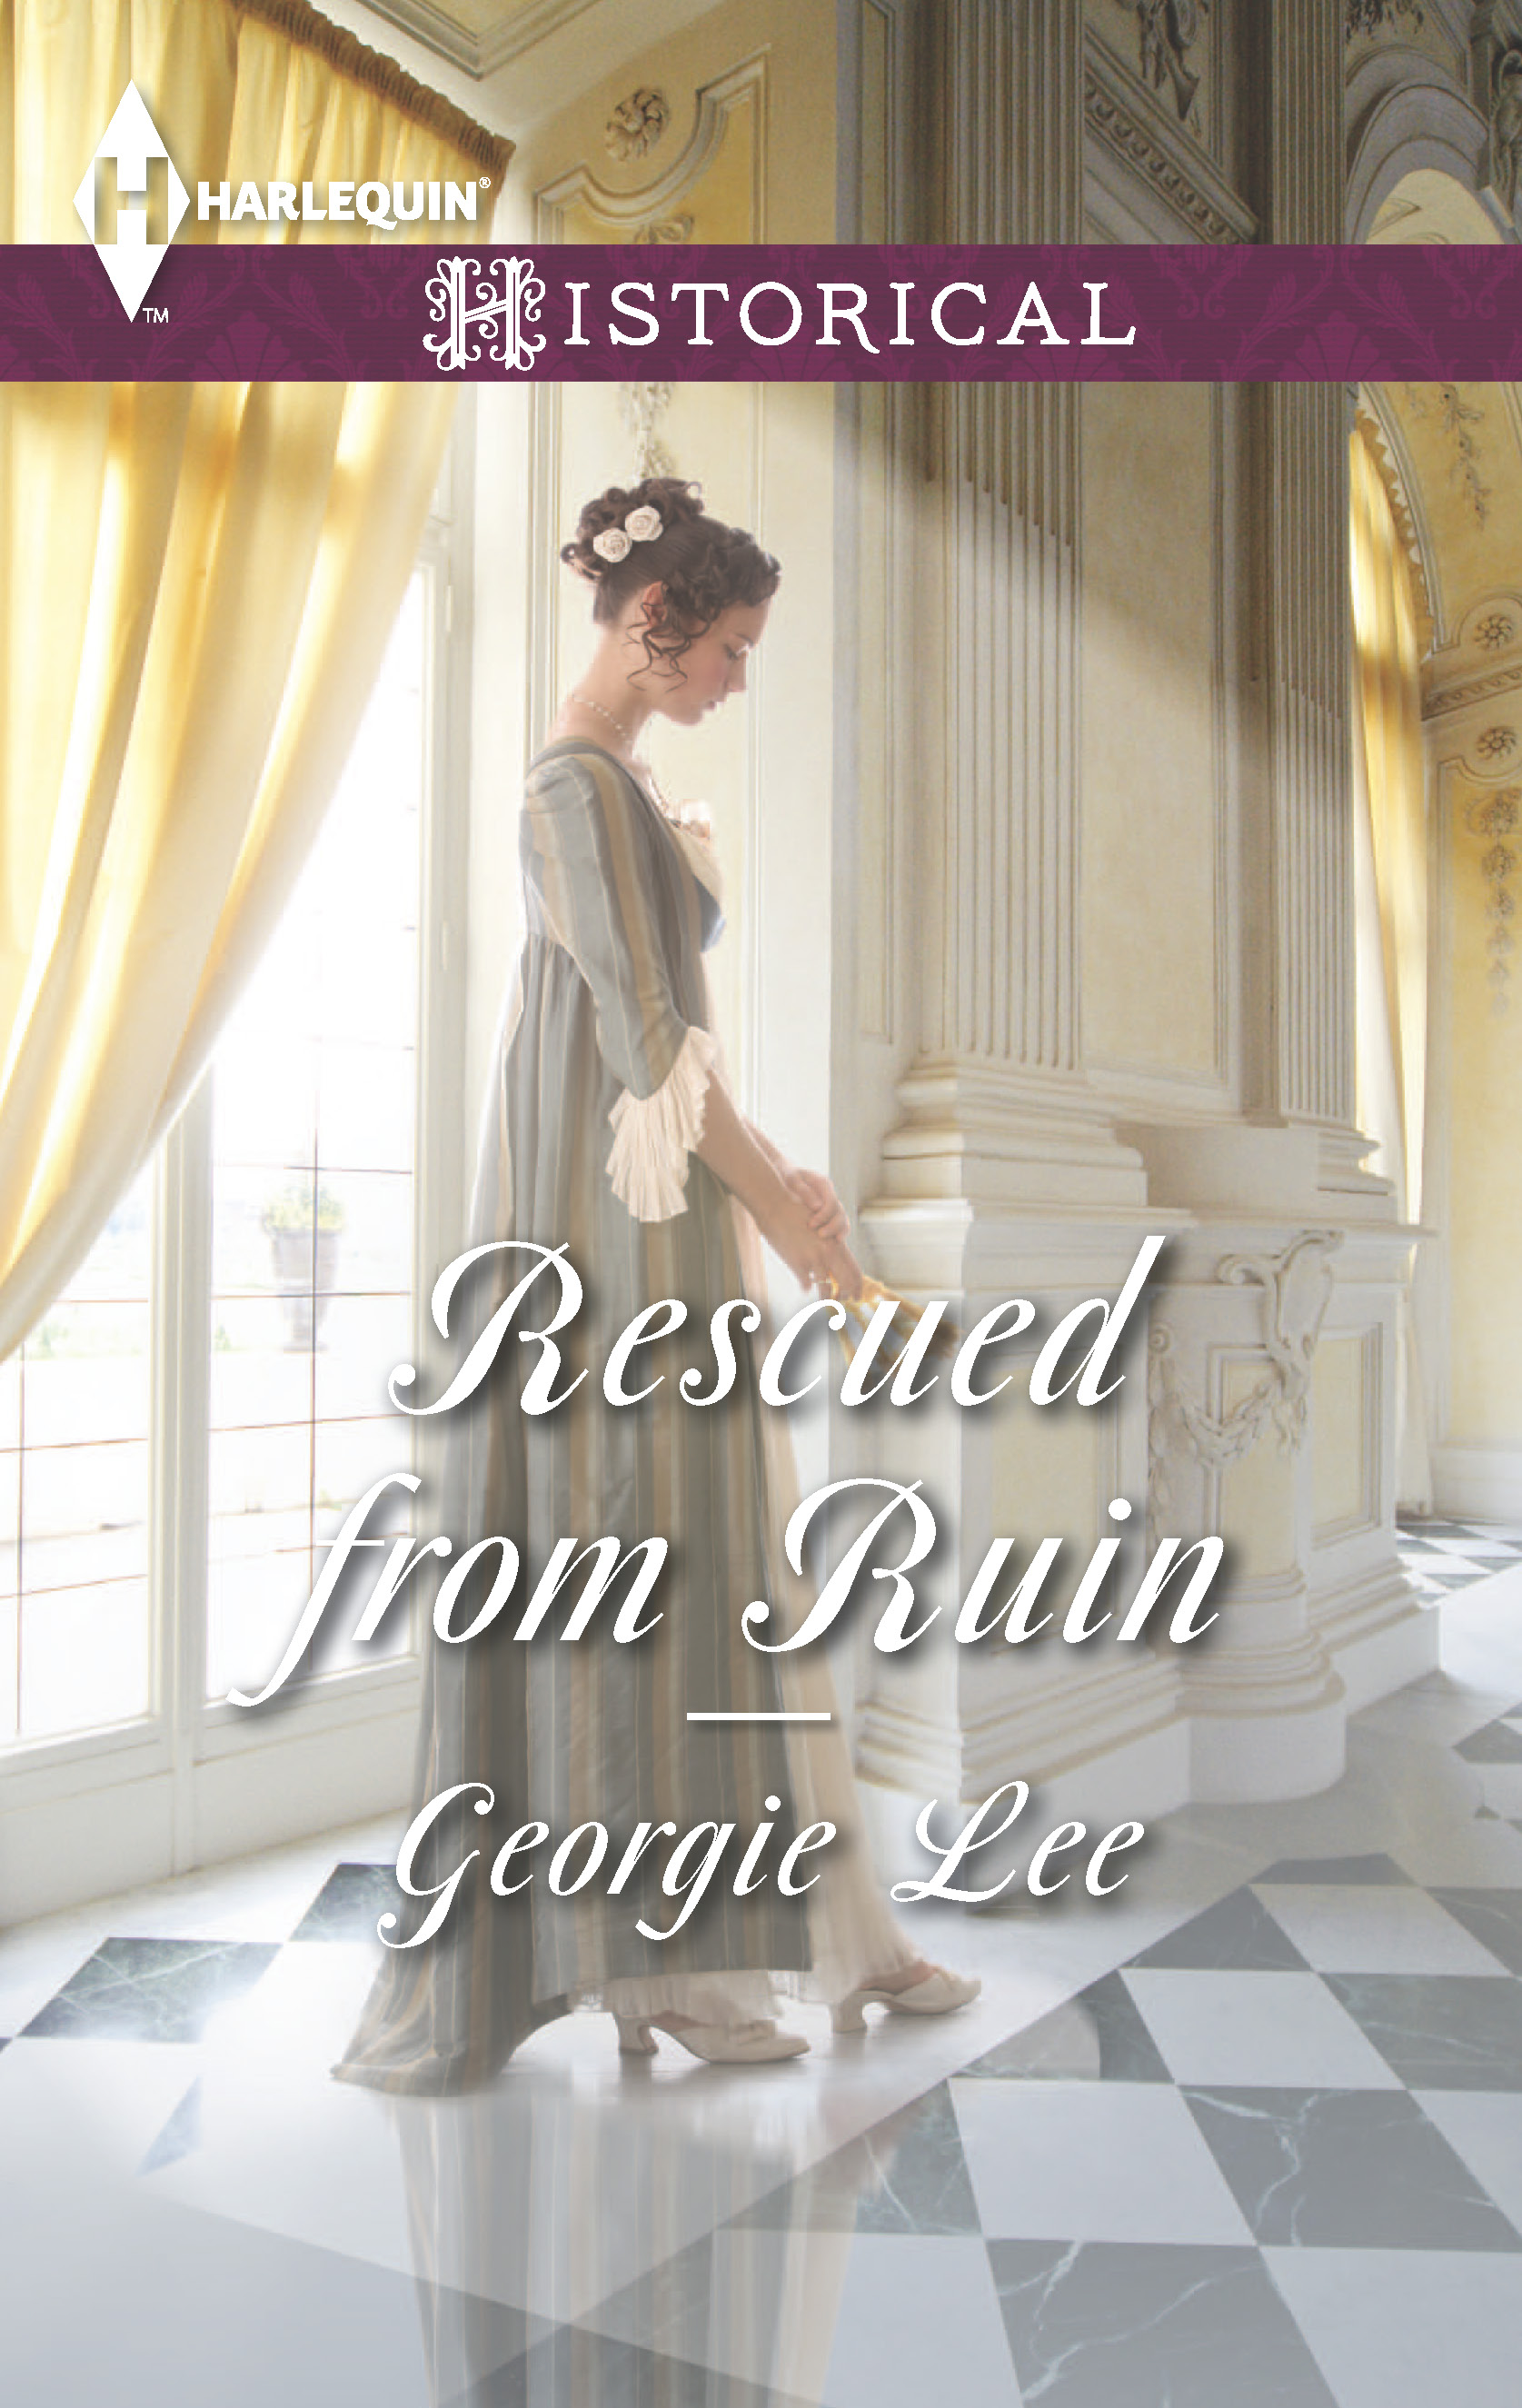 Rescued from Ruin, Georgie Lee, Harlequin, Historical Romance